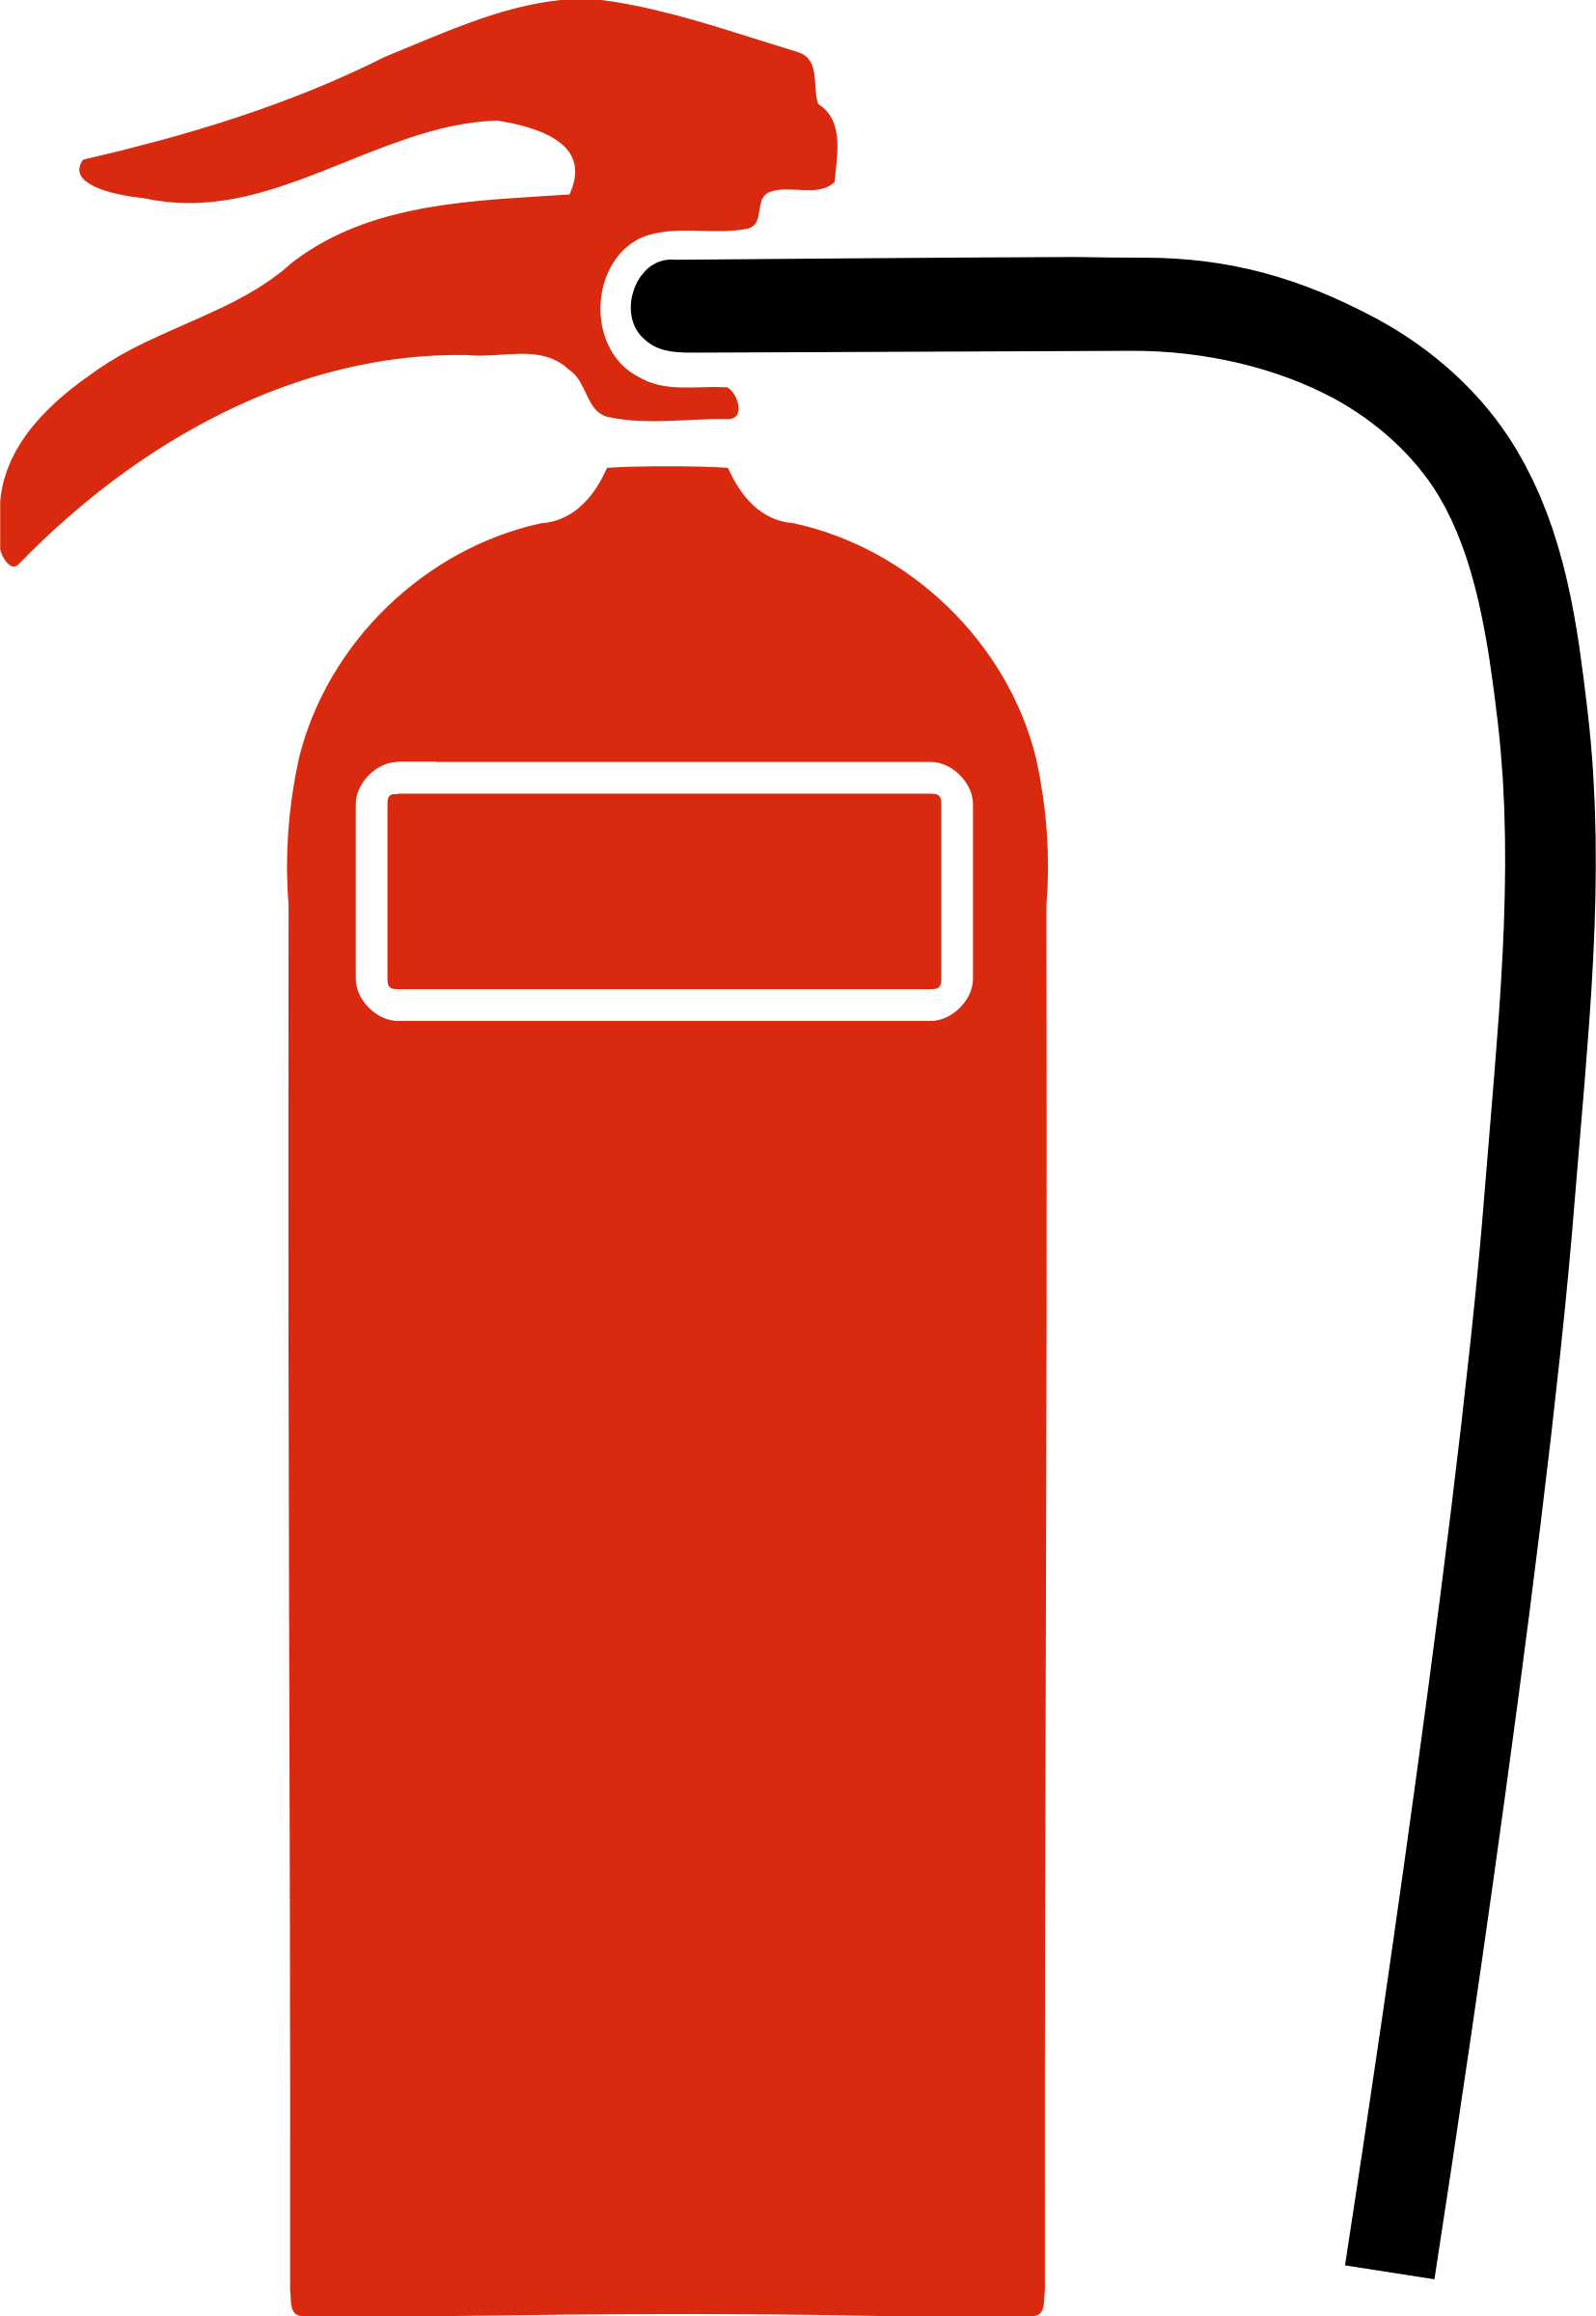 vector transparent Water big image png. Symbols clipart fire extinguisher